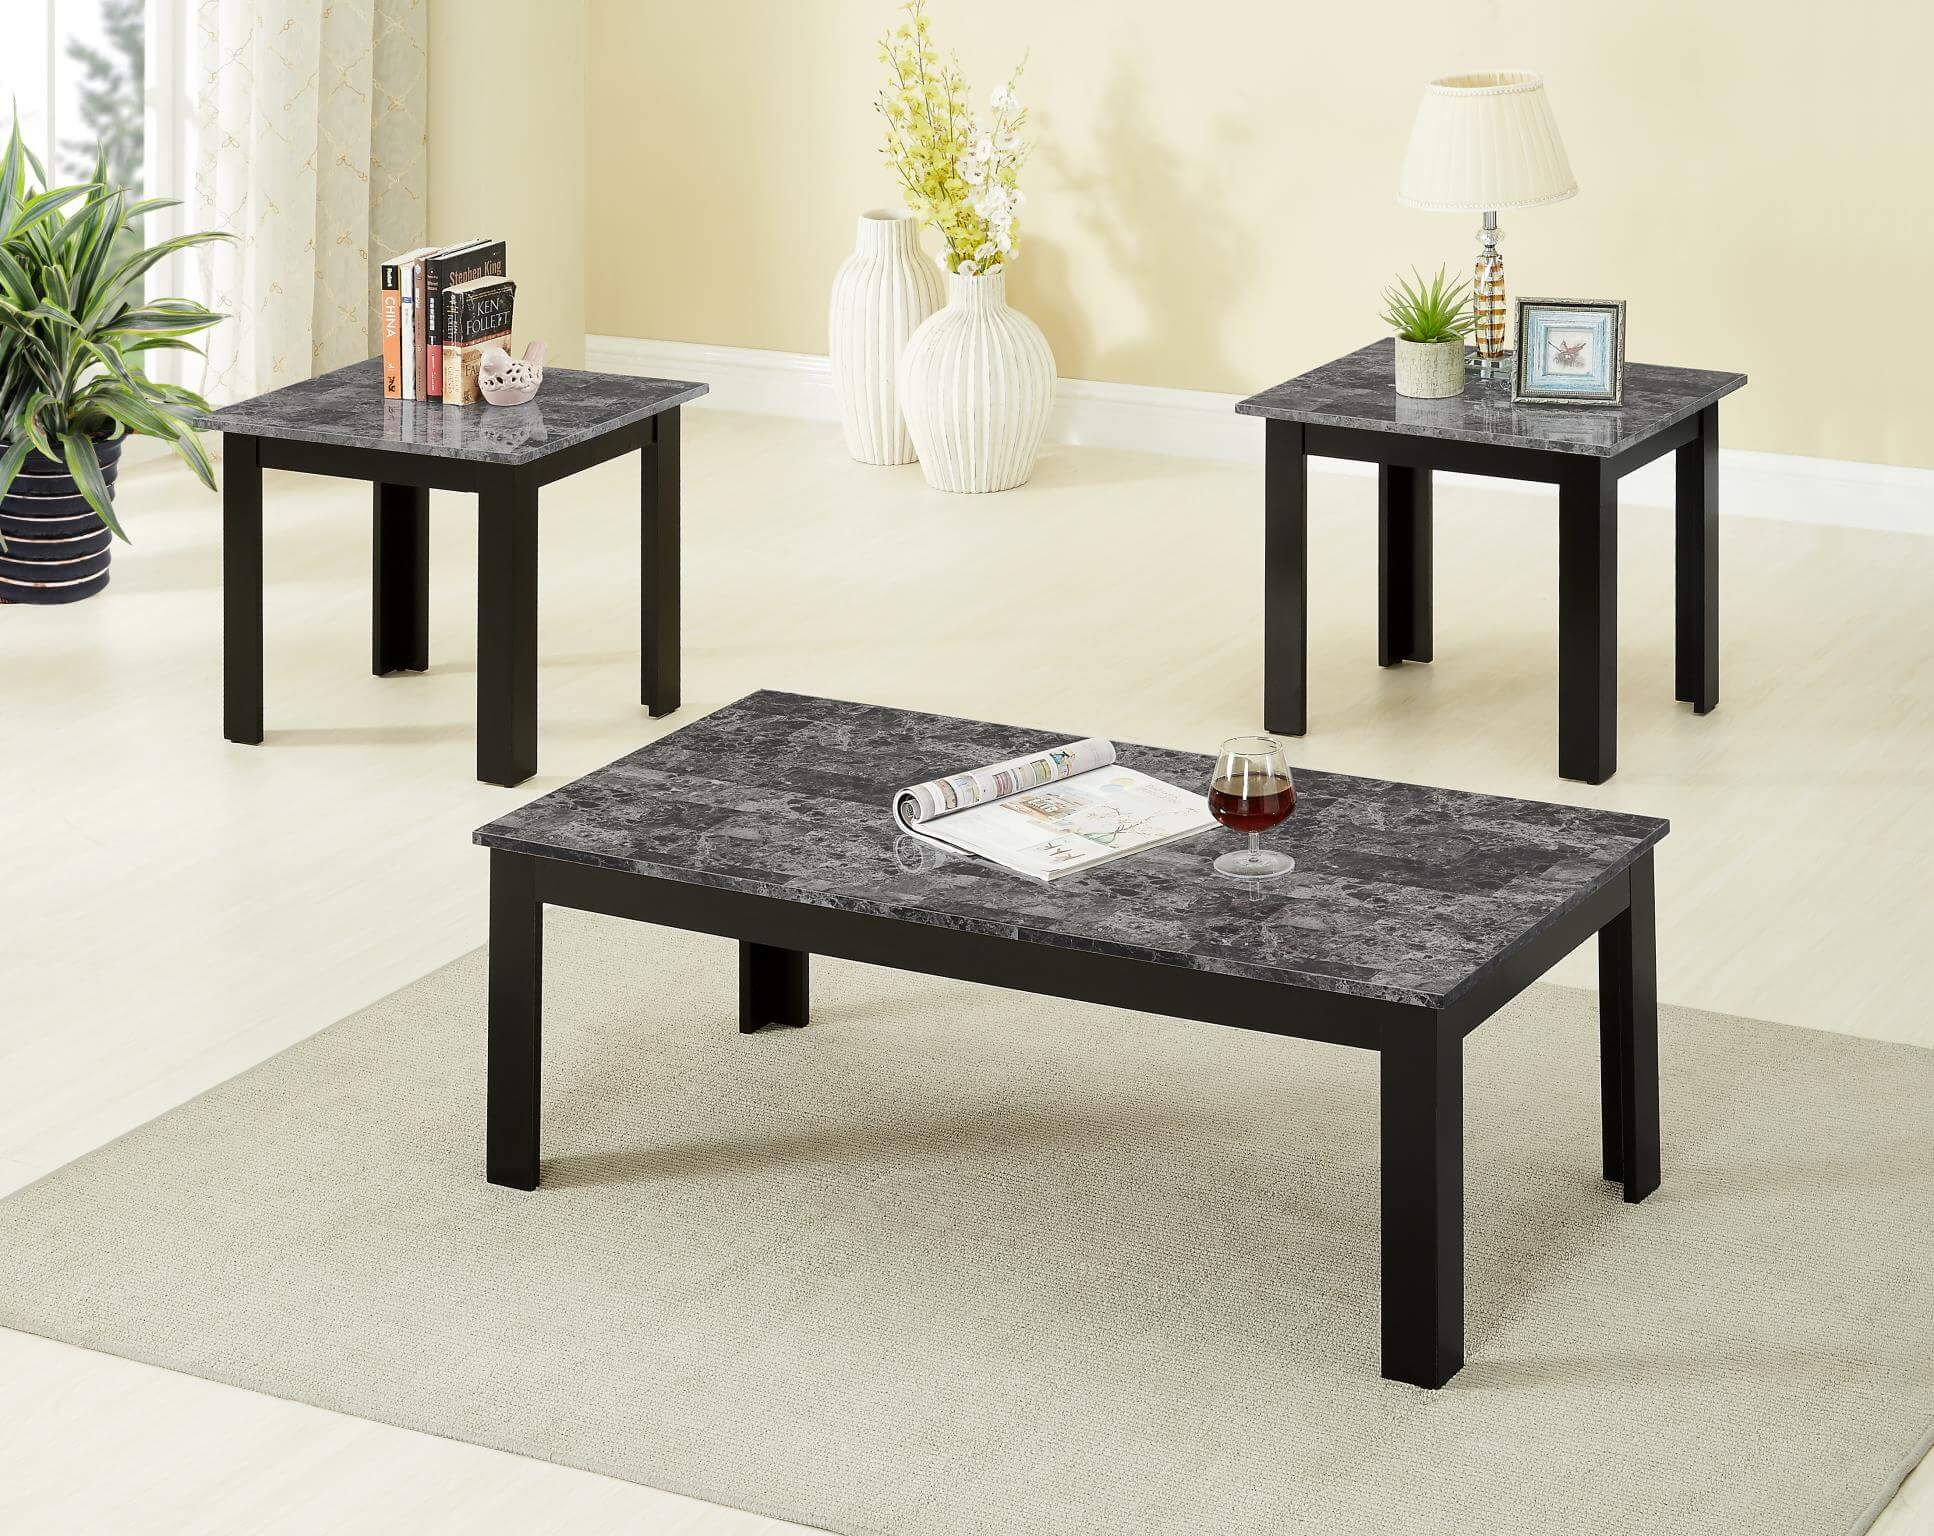 3 Piece Black Faux Marble Coffee And End Table Set